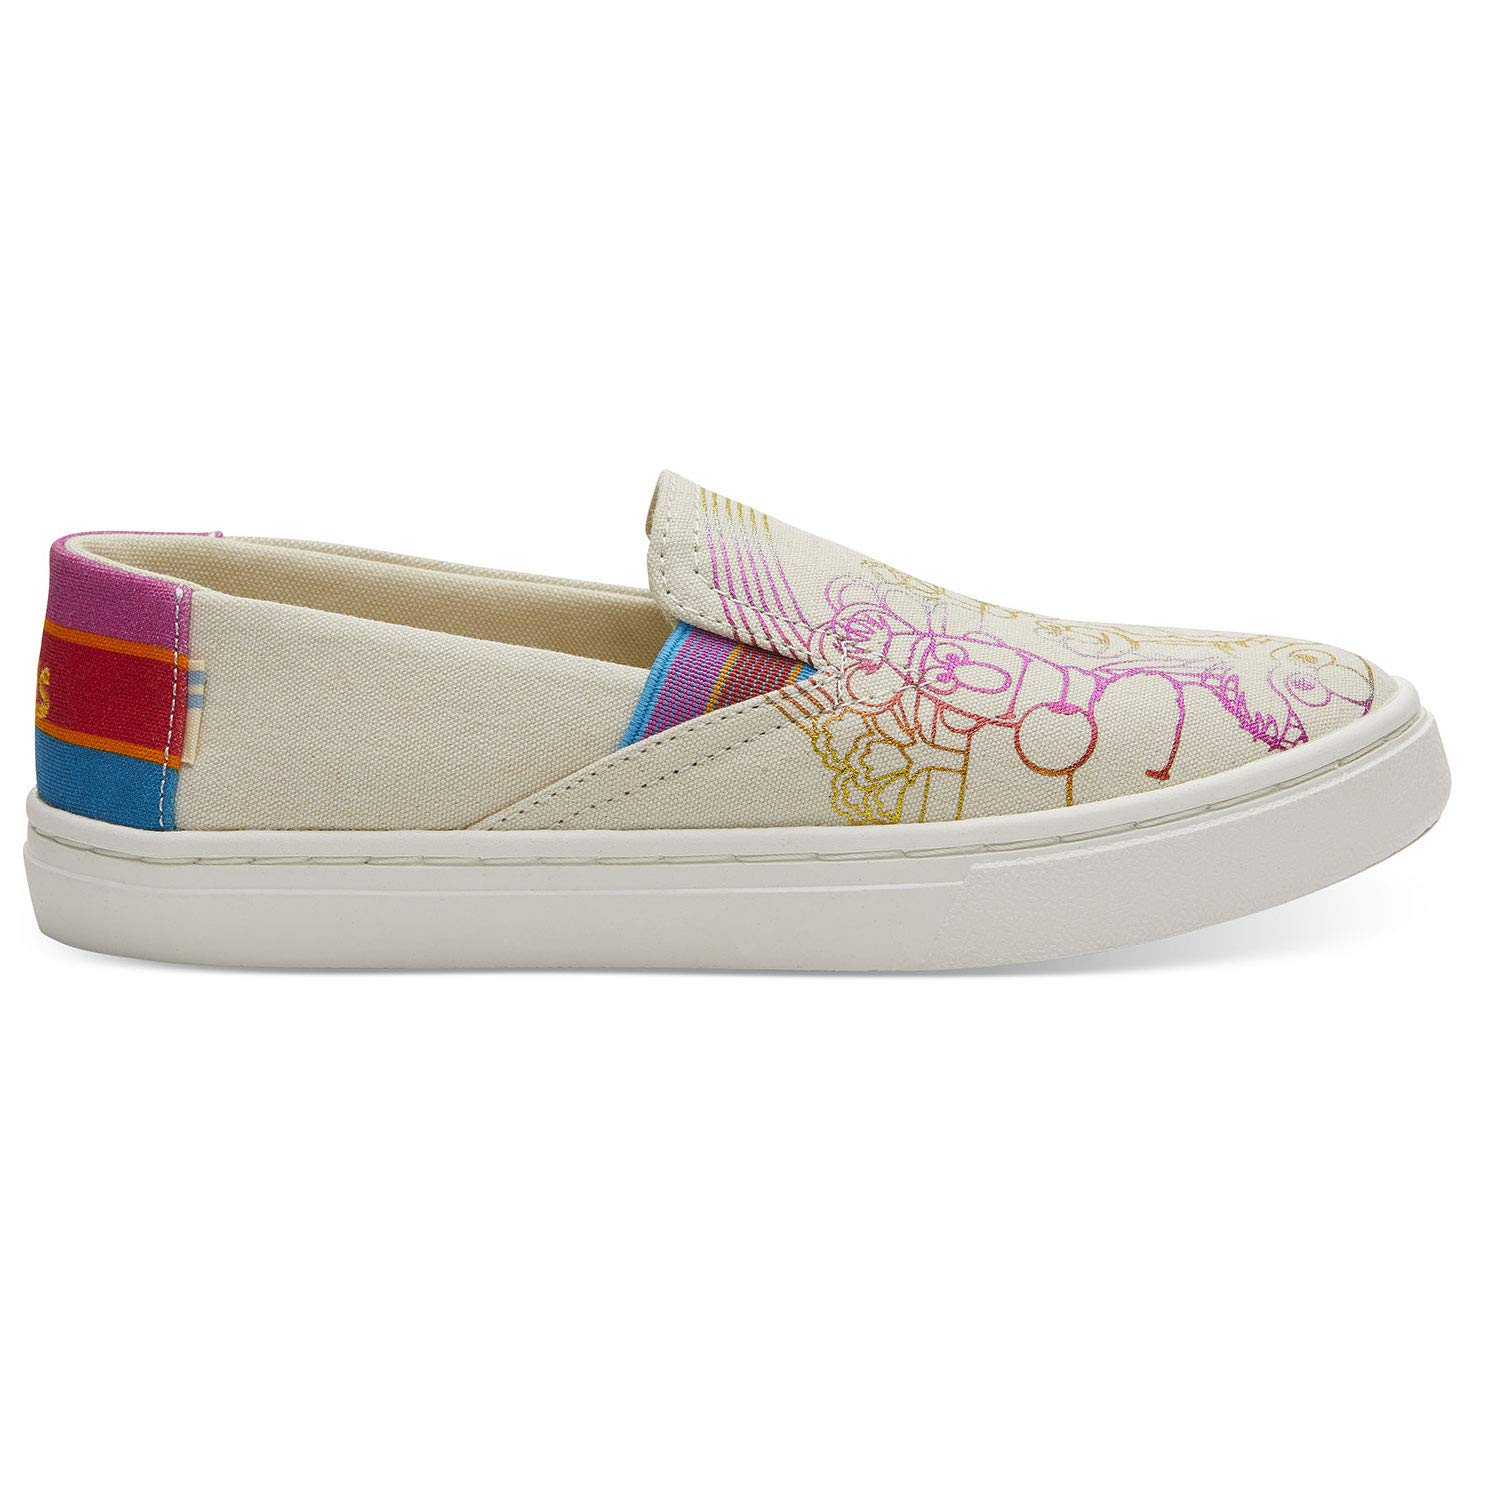 TOMS Sesame Street X Foil Printed Canvas Youth Luca Slip-Ons 10013644 (Size: 6)